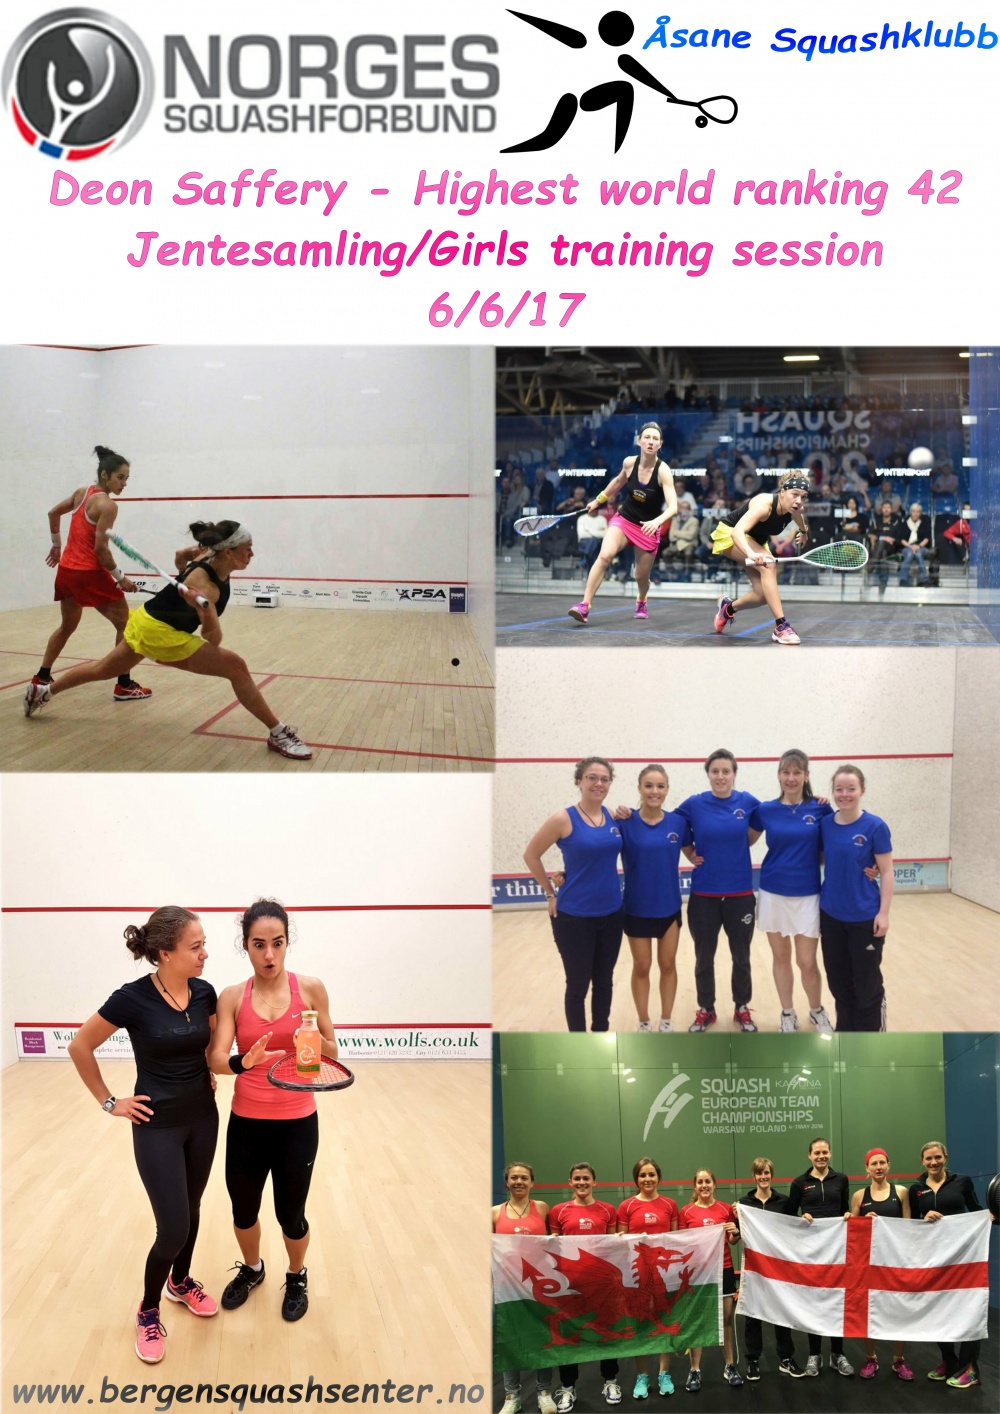 Deon Saffery – Jentesamling/Girls training session